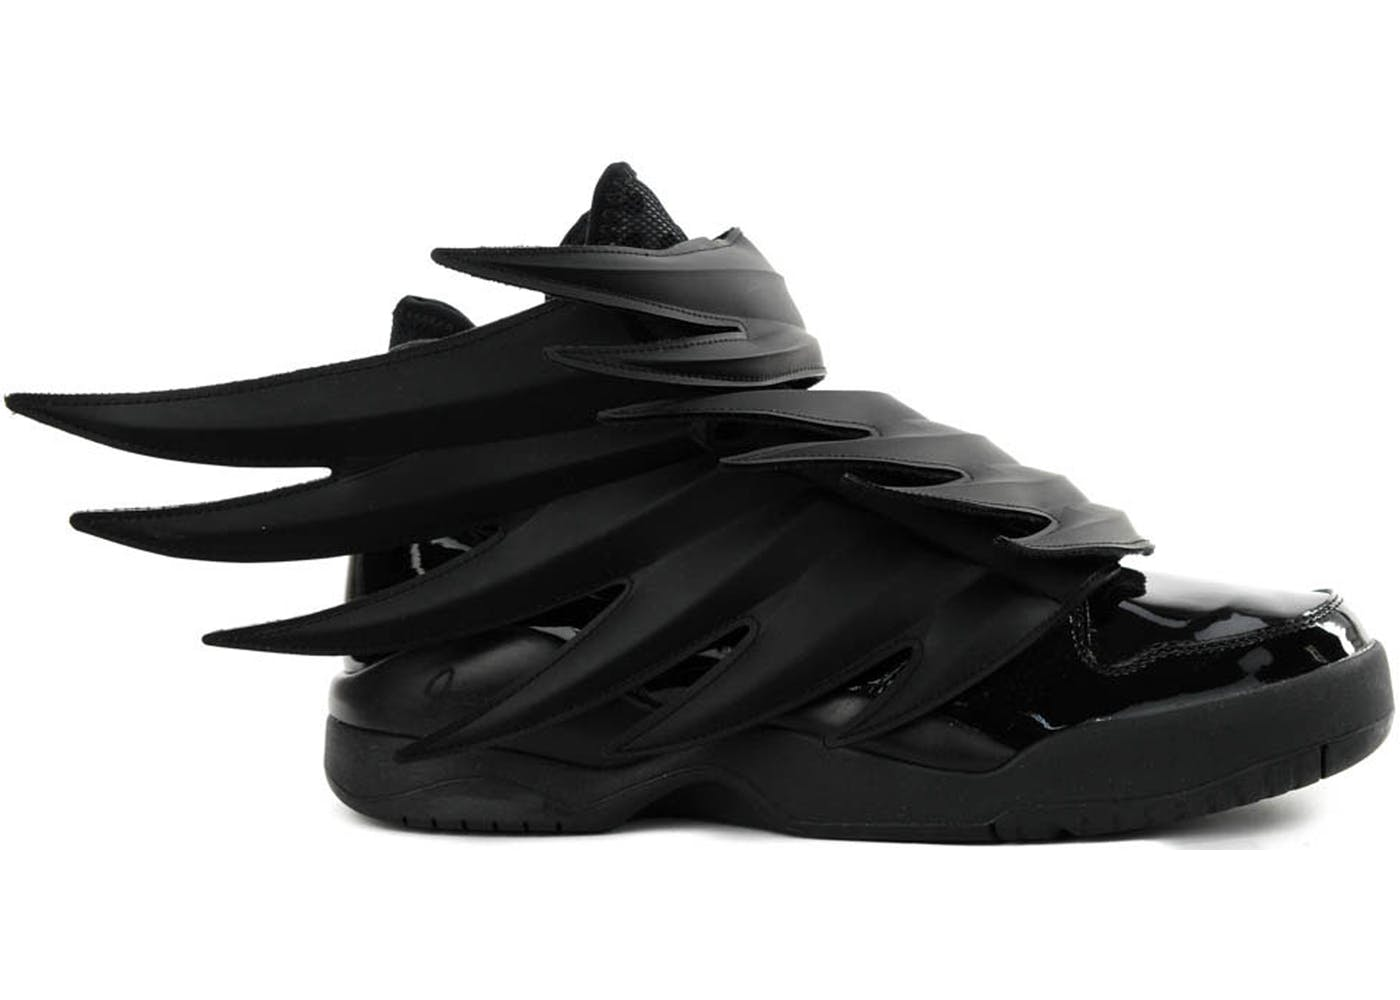 adidas jeremy scott wings 3.0 shoes